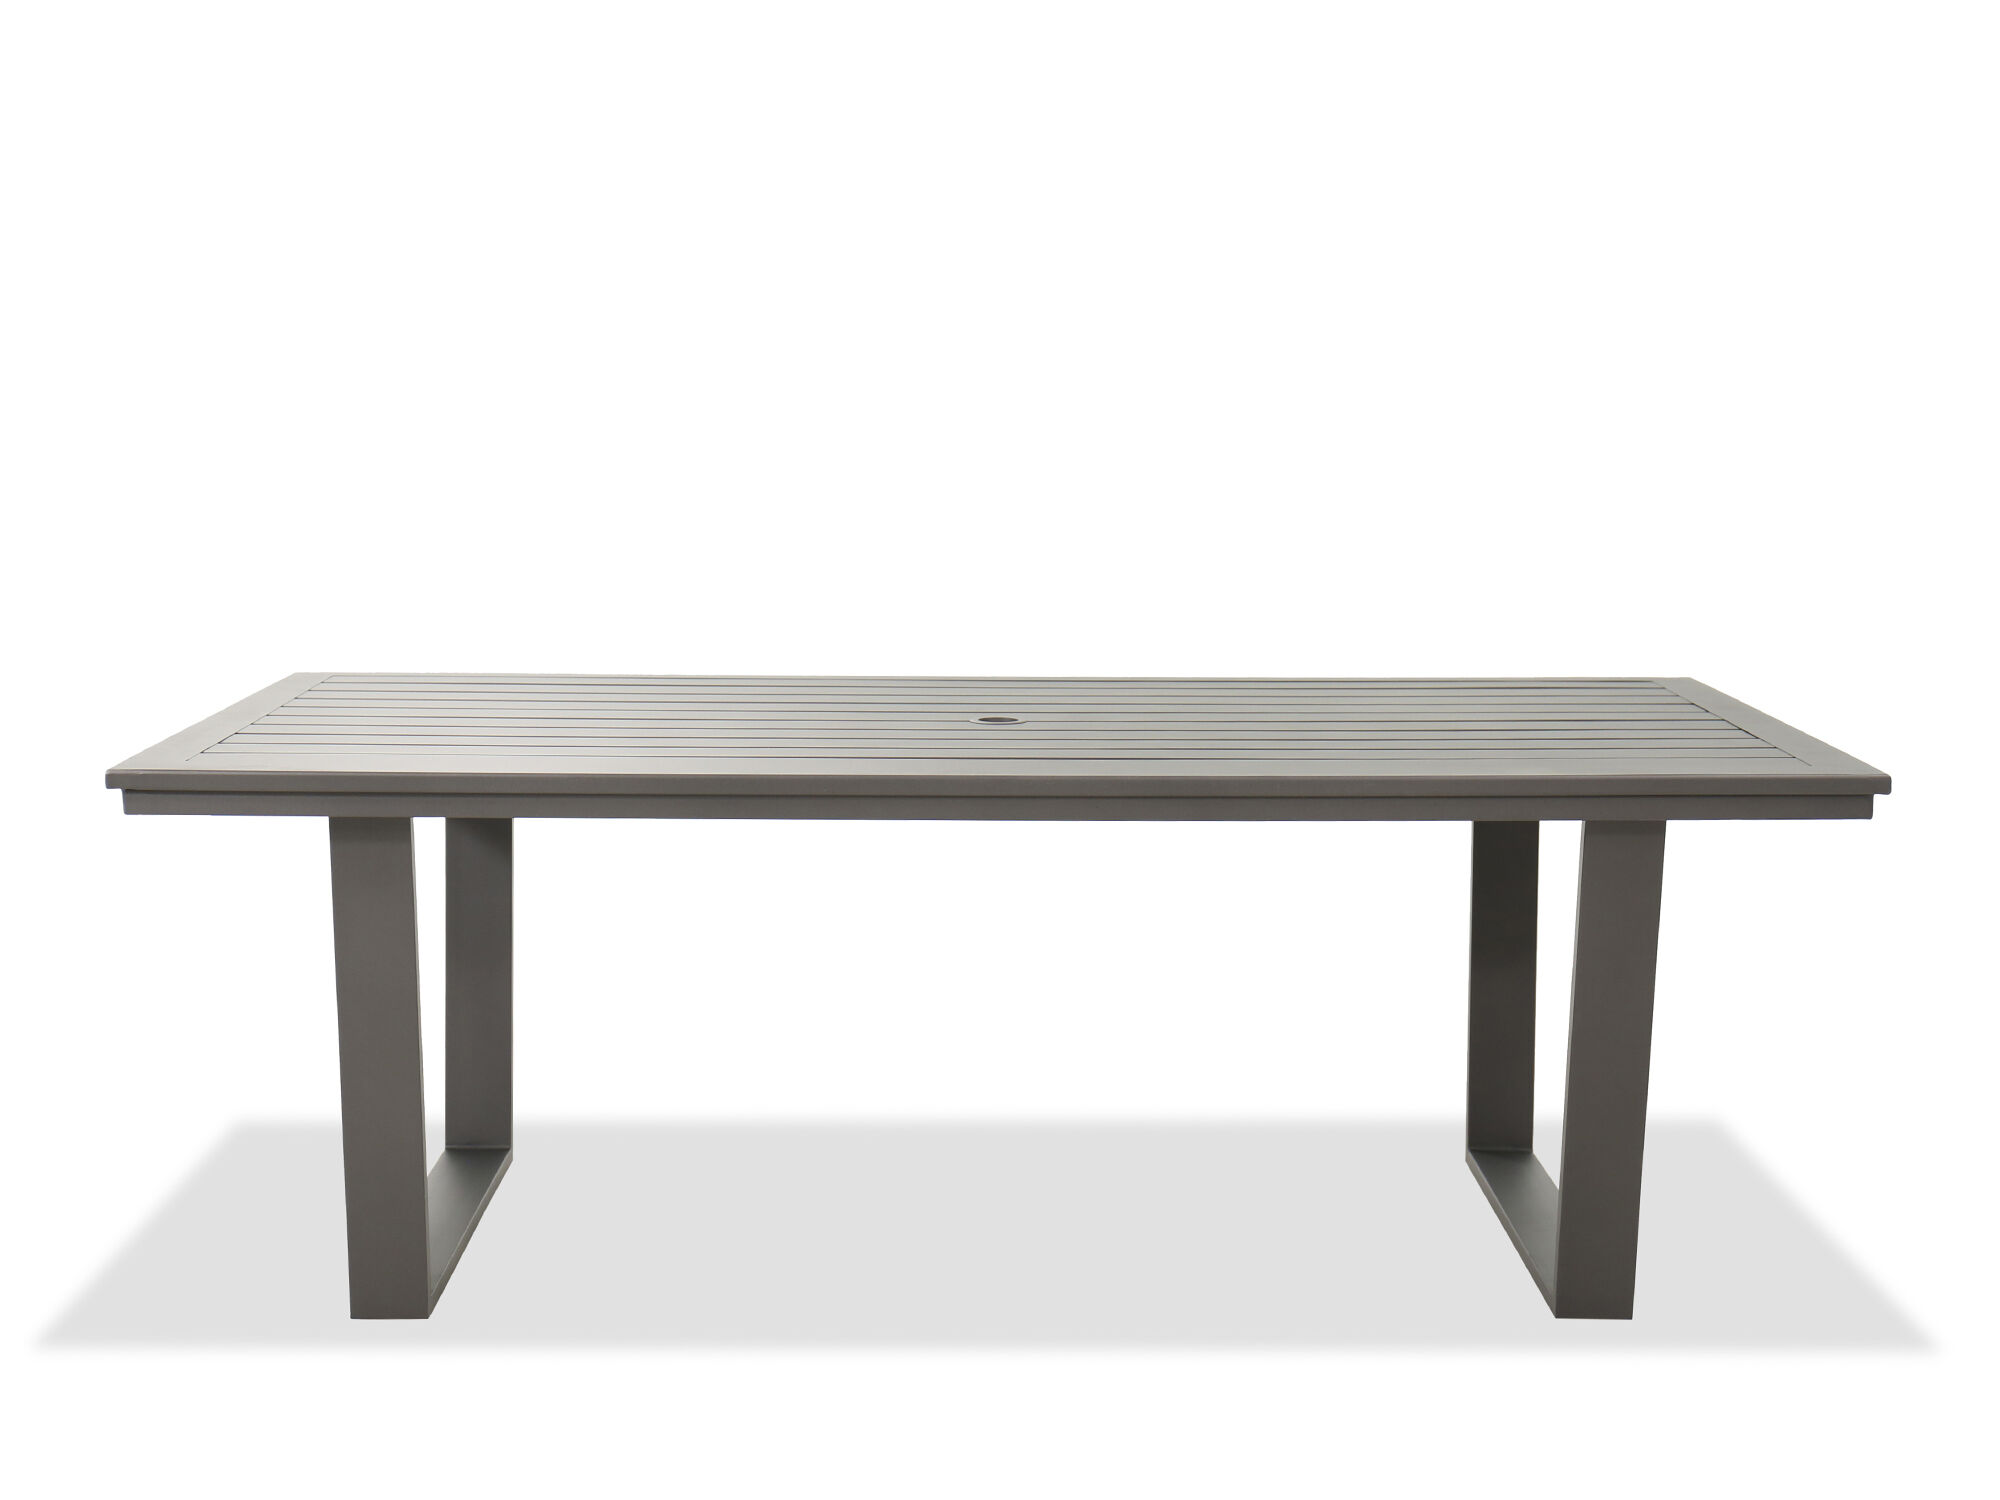 Casual Rectangular Patio Dining Table In Gray | Mathis Brothers Furniture